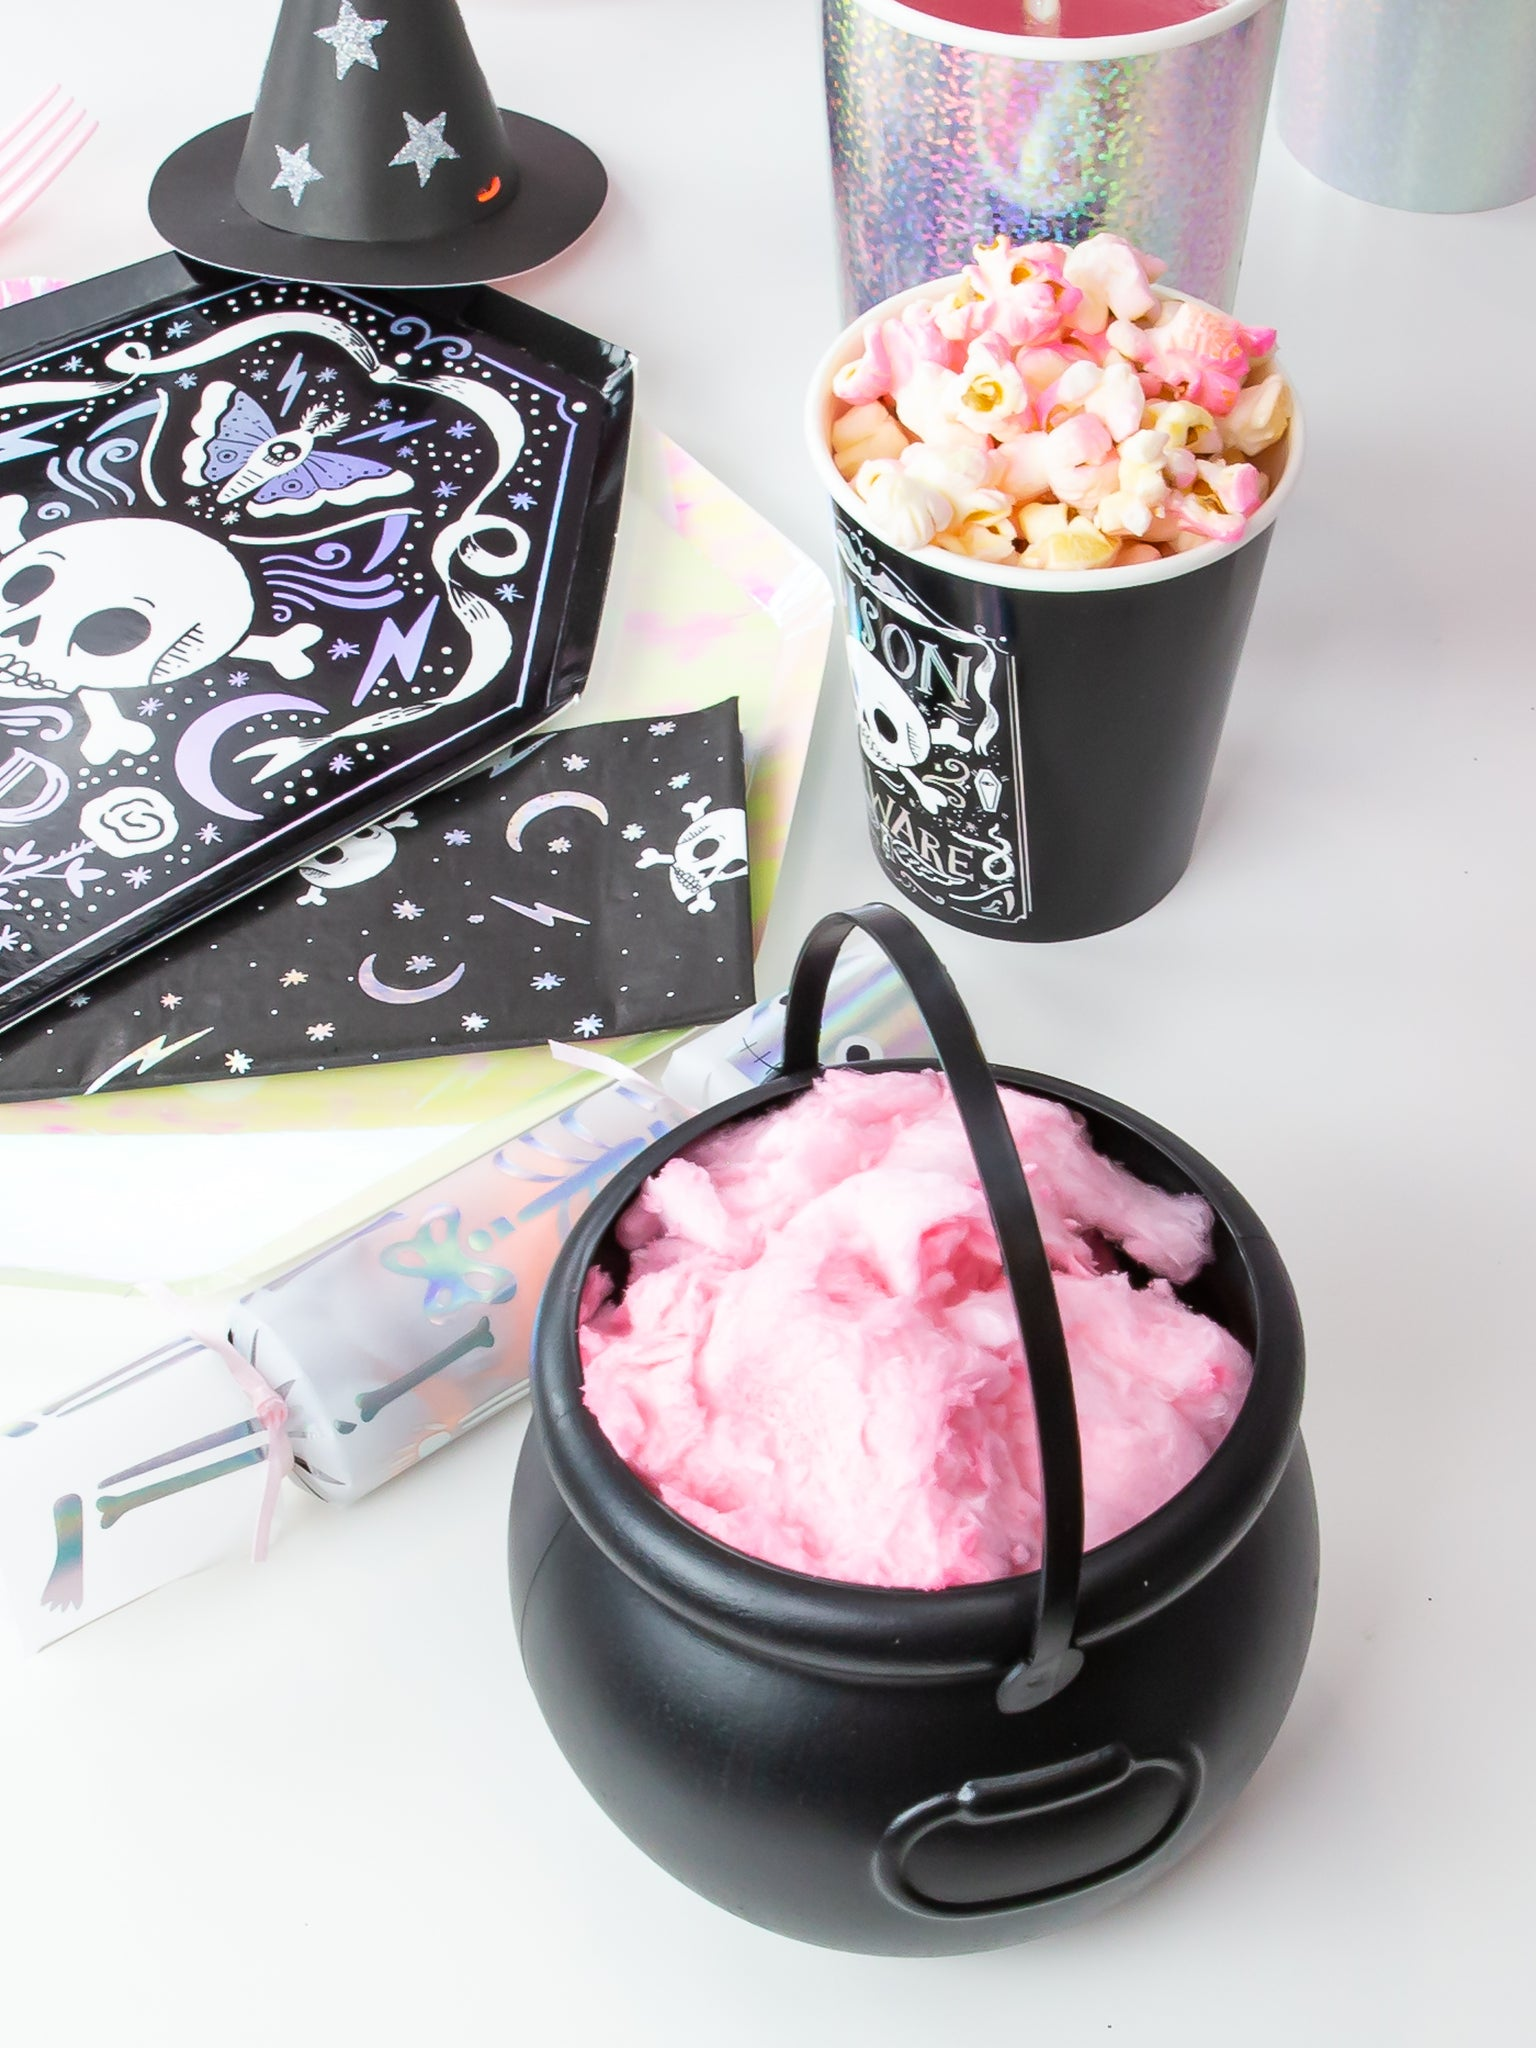 pink cotton candy in black caldron